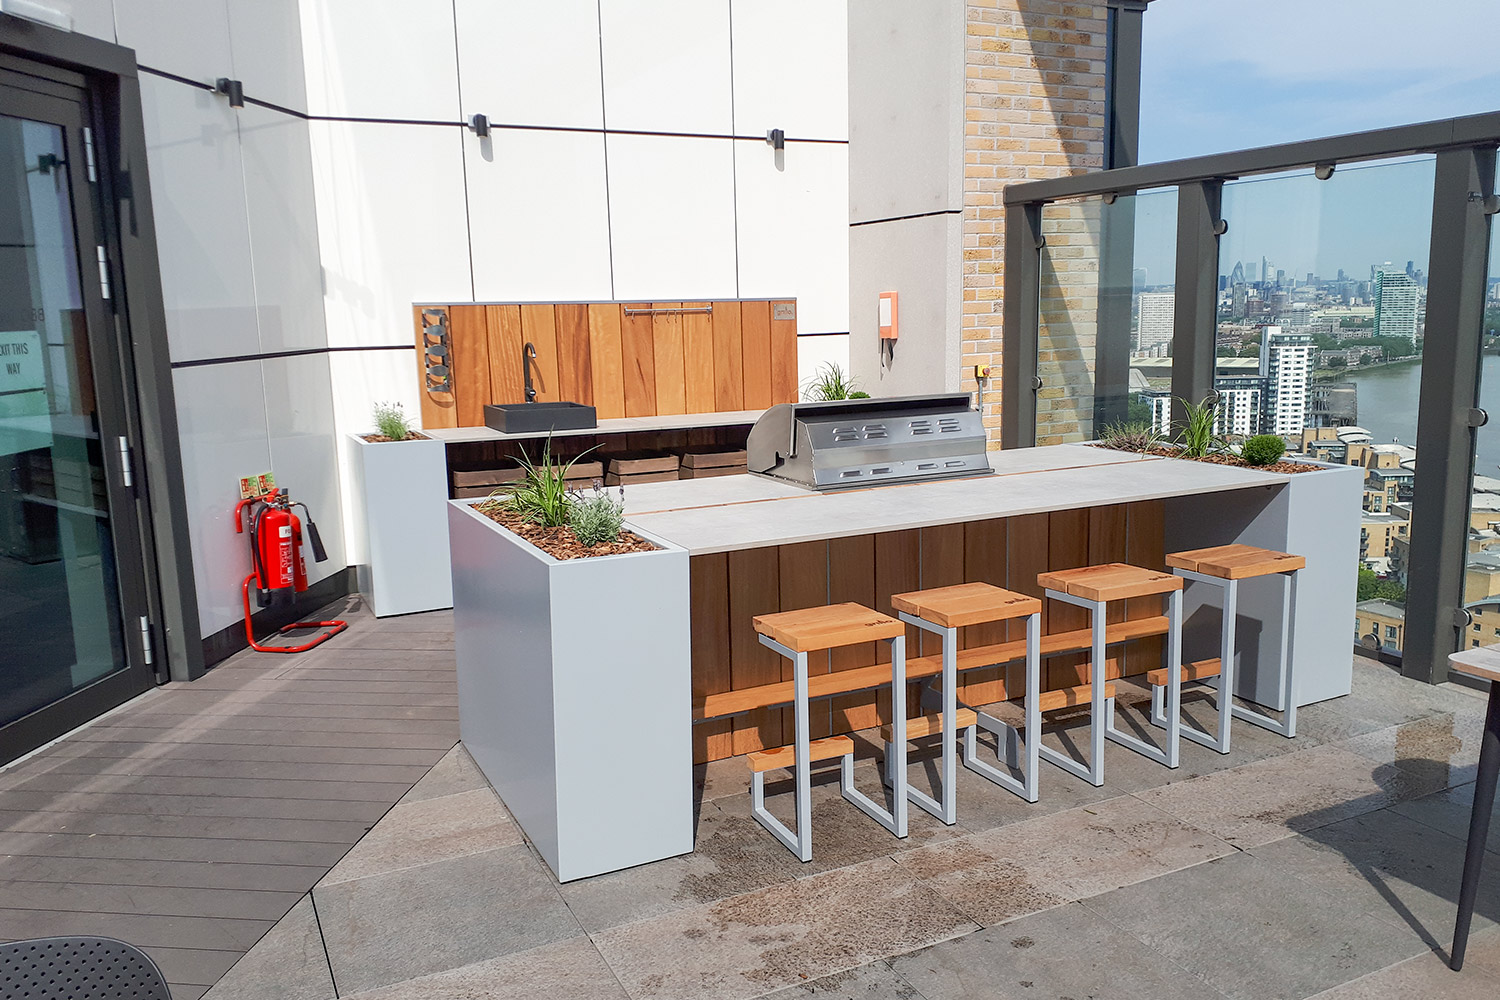 roof terrace Grillo kitchen with island seating and kitchen